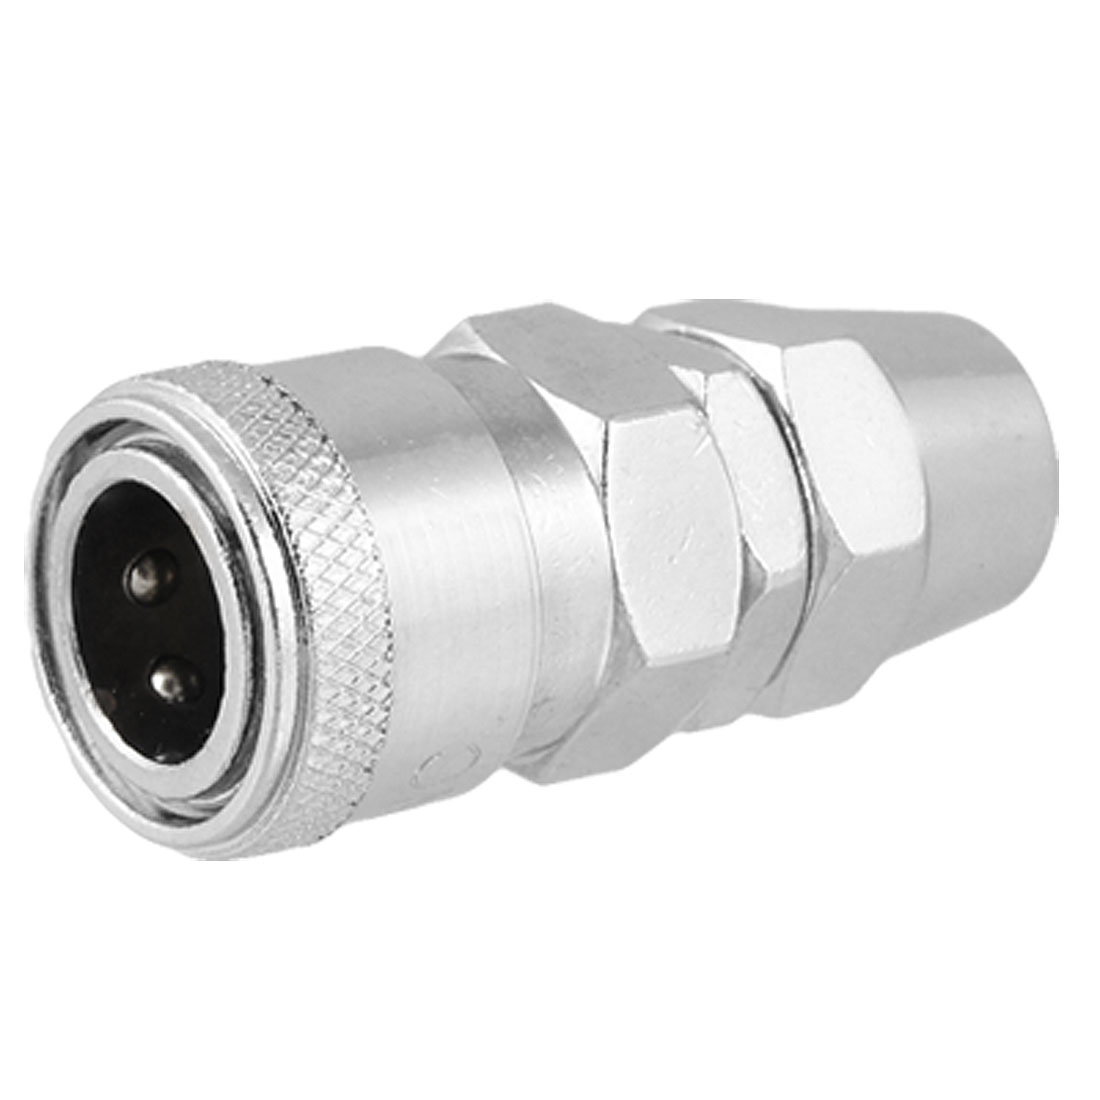 SP-40 Pneumatic Pipe Connector 9 x 12mm Metal Qucik Coupler